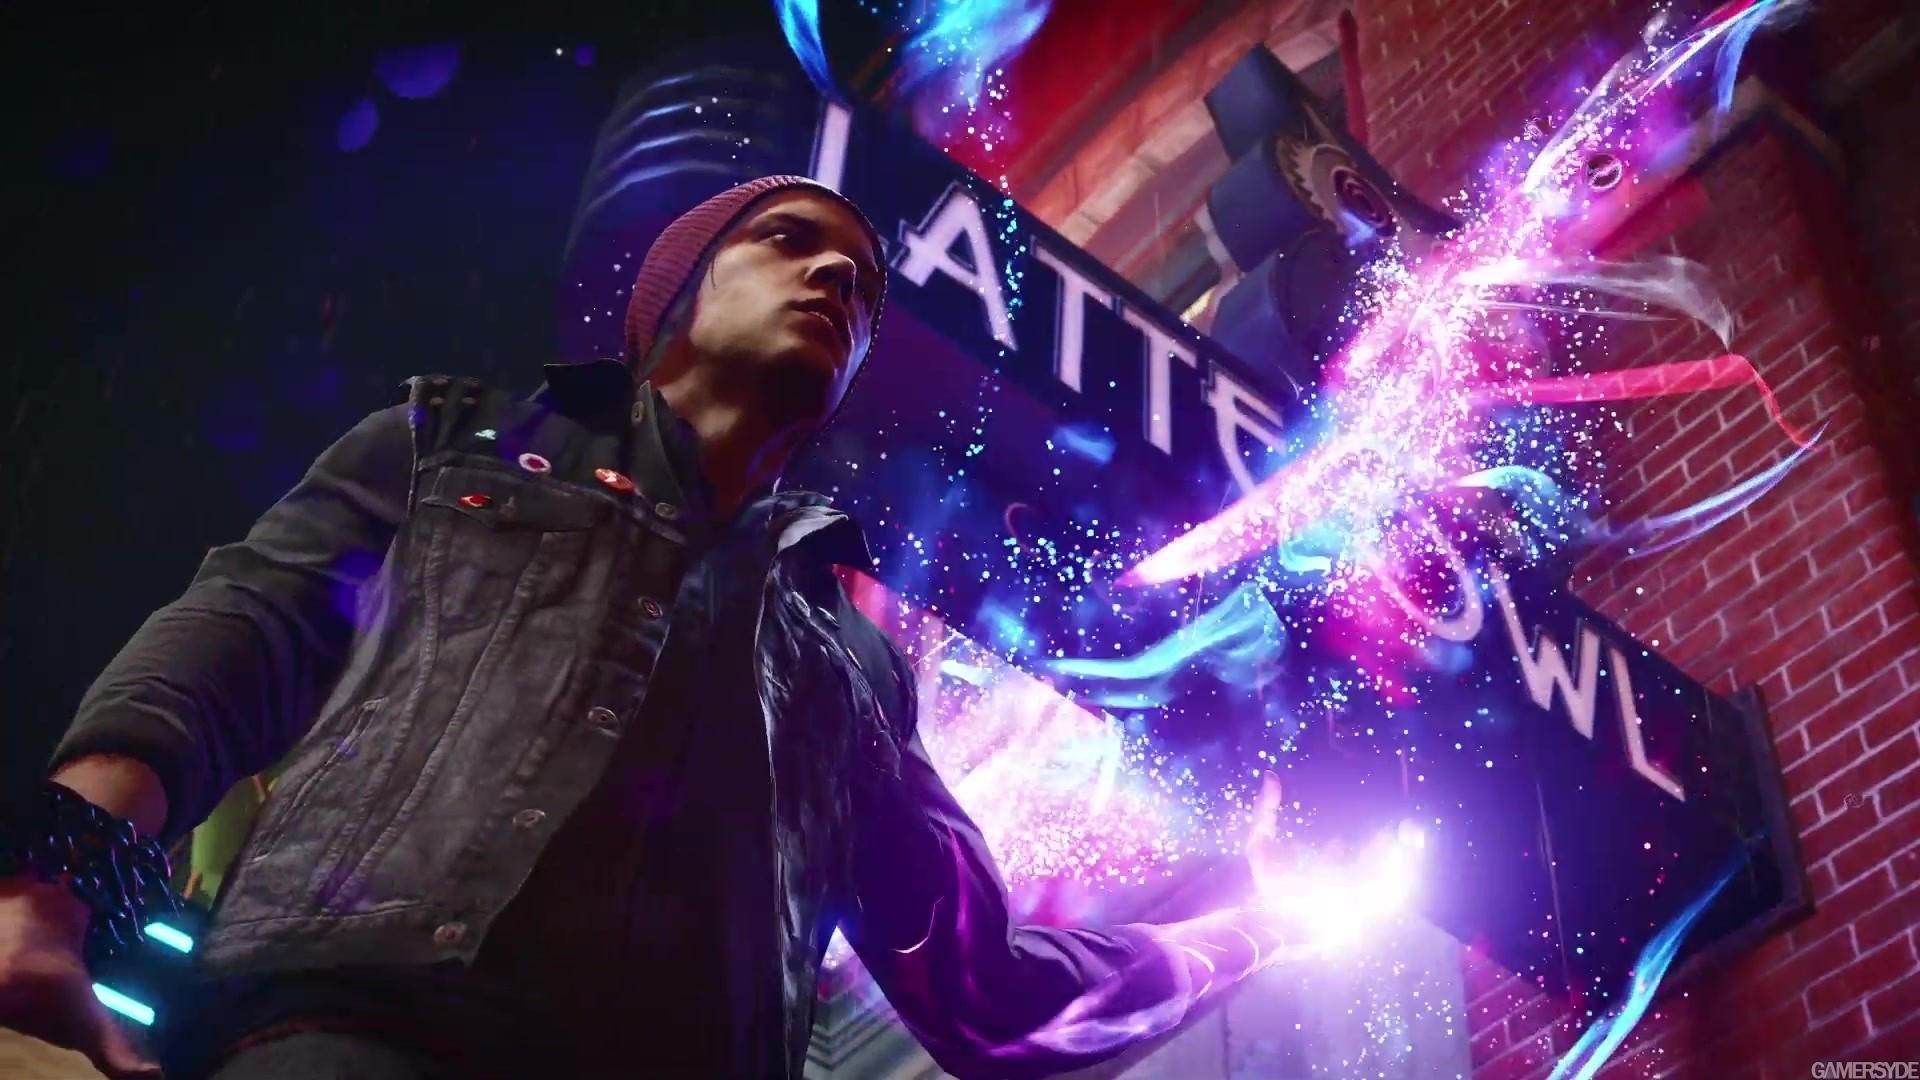 1920x1080 Pics Photos Hd Infamous Second Son Wallpaper